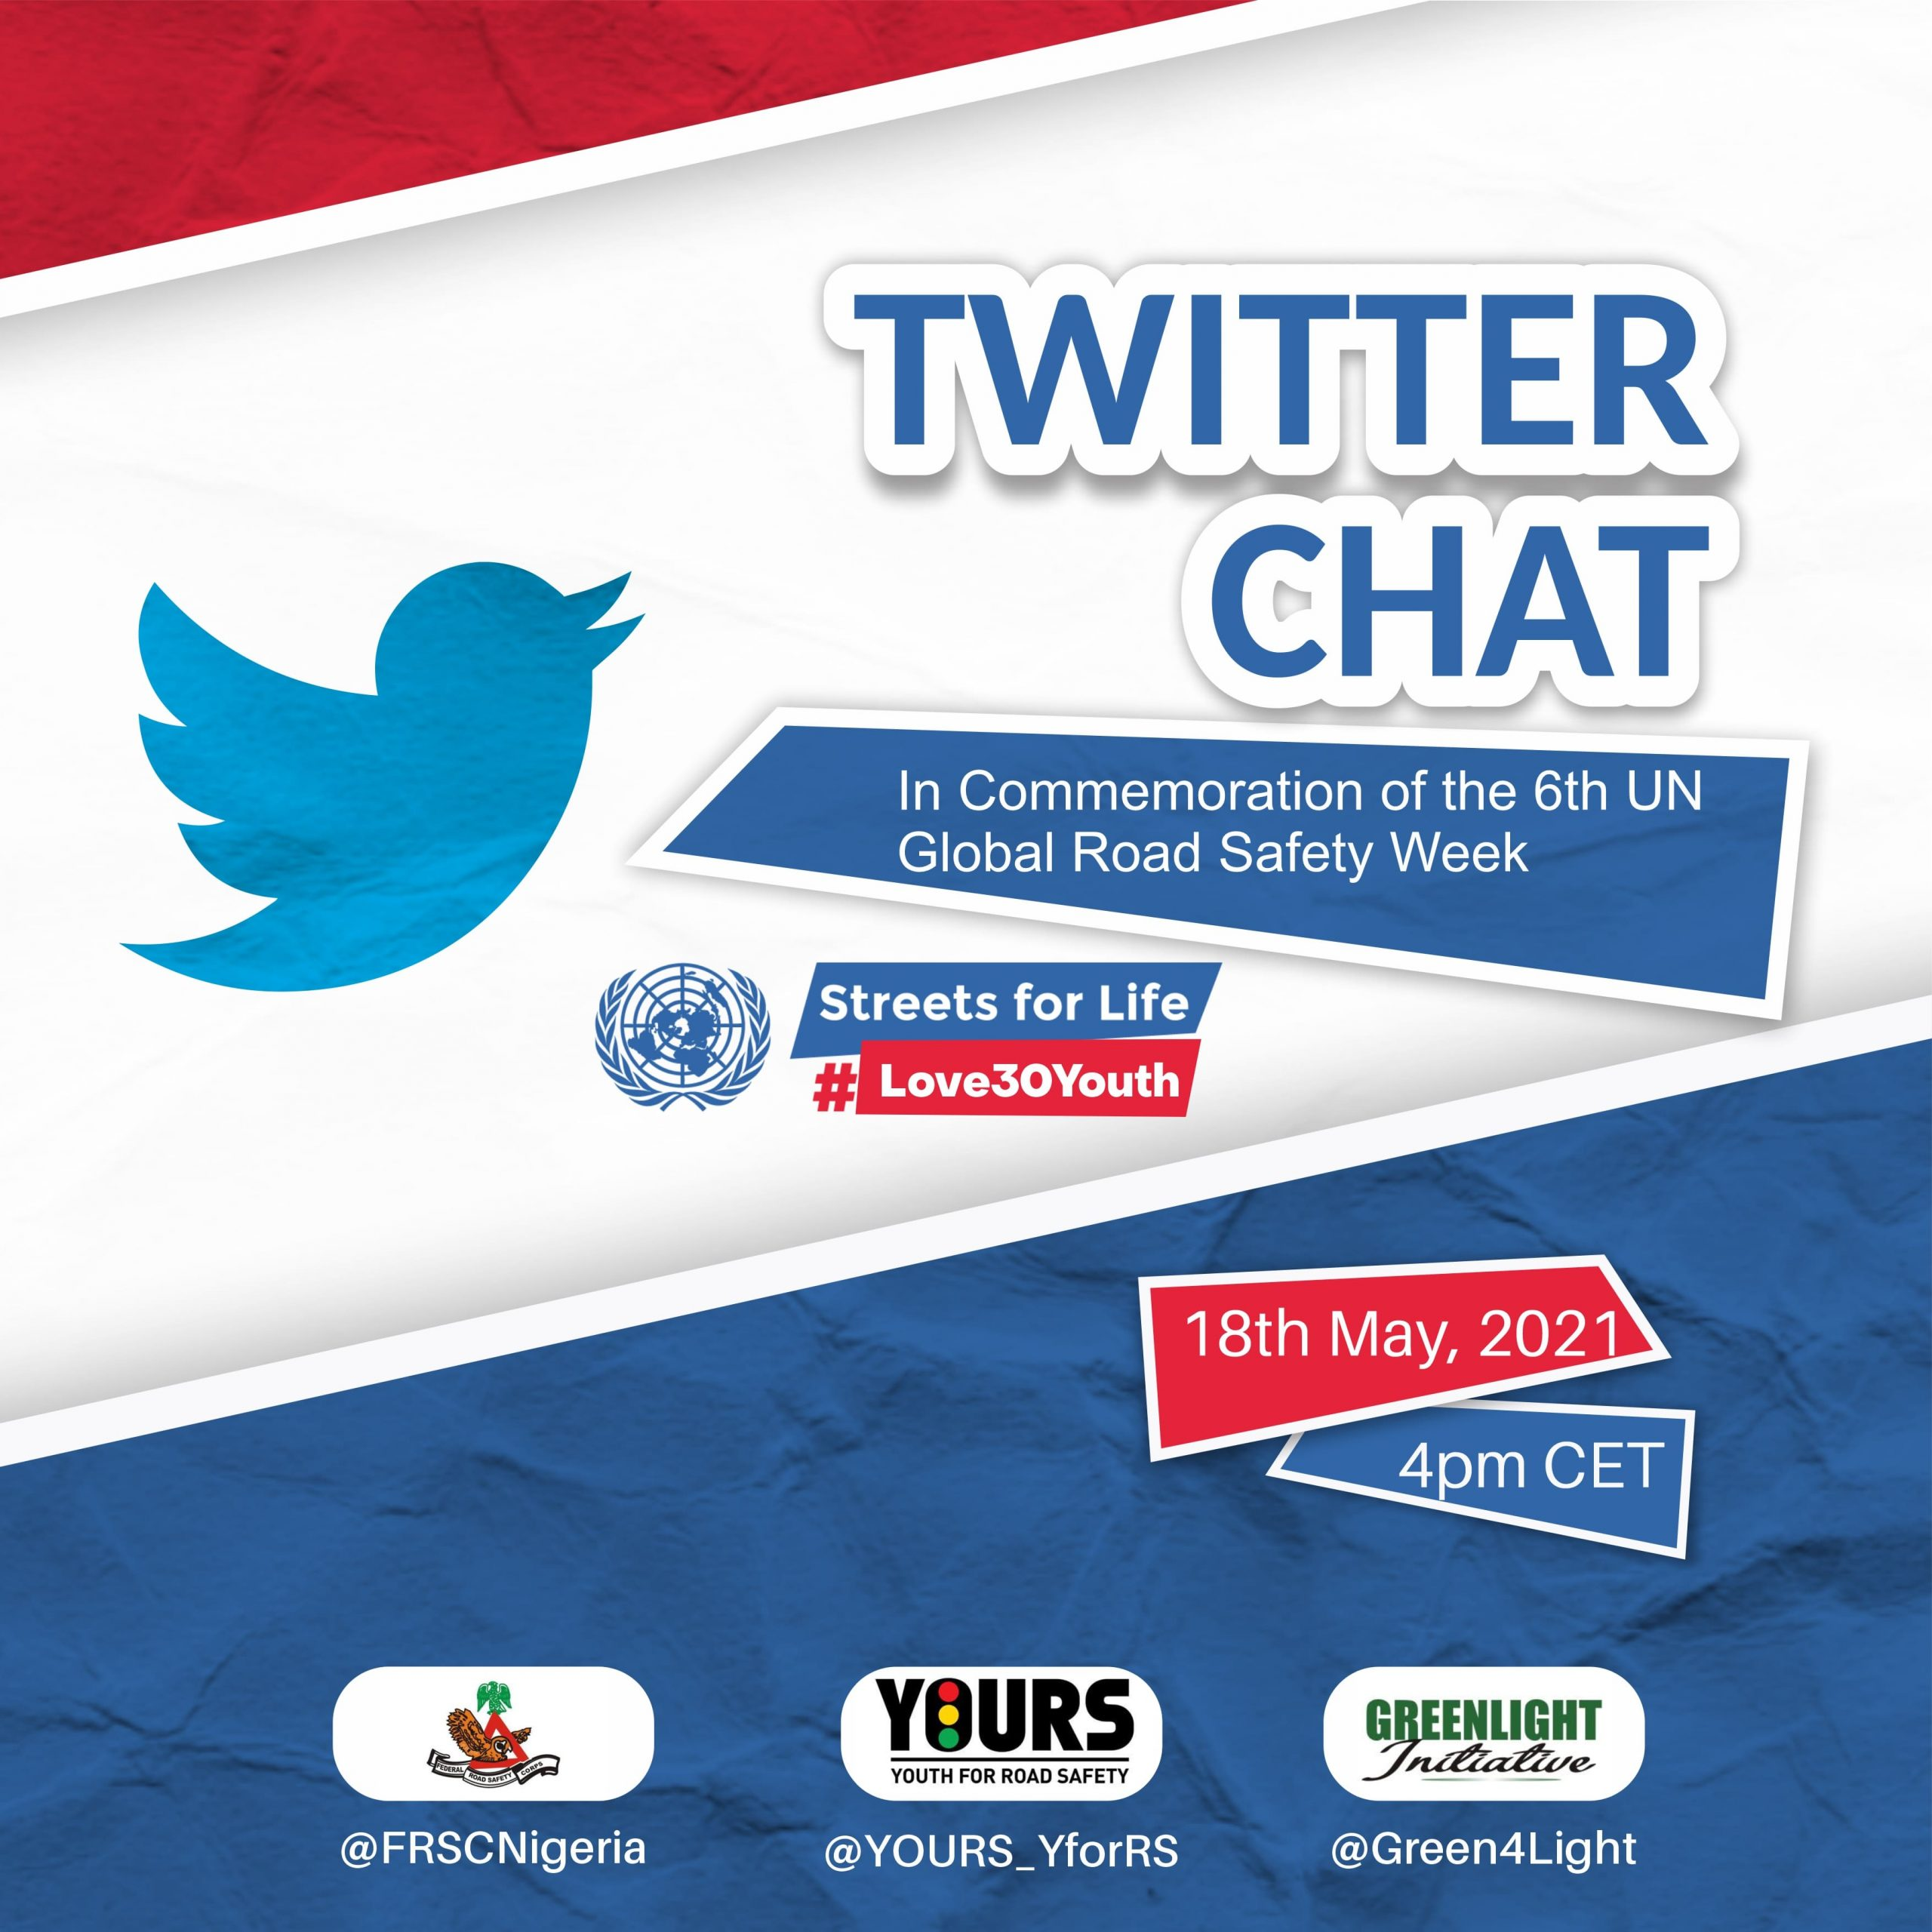 #Love30Youth Twitter Chat